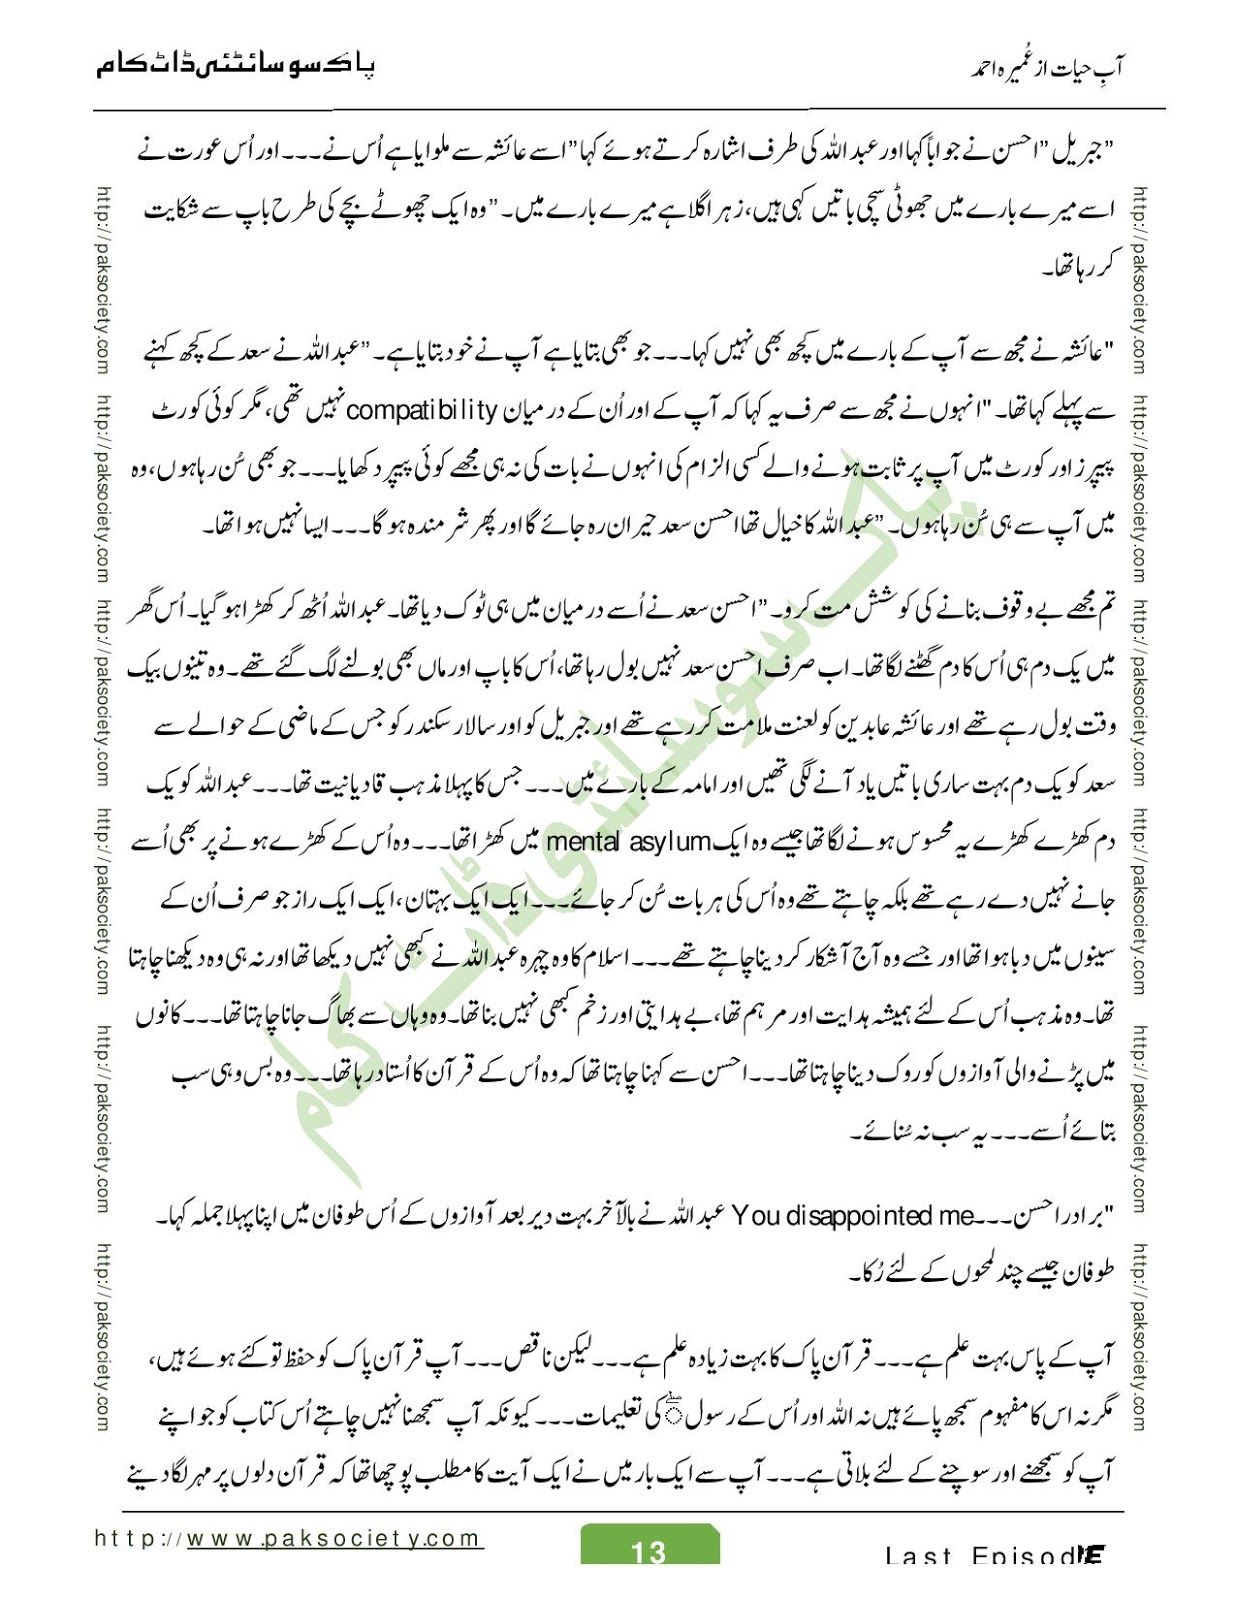 Kitab dost aab e hayat by umaira ahmed last episode online reading